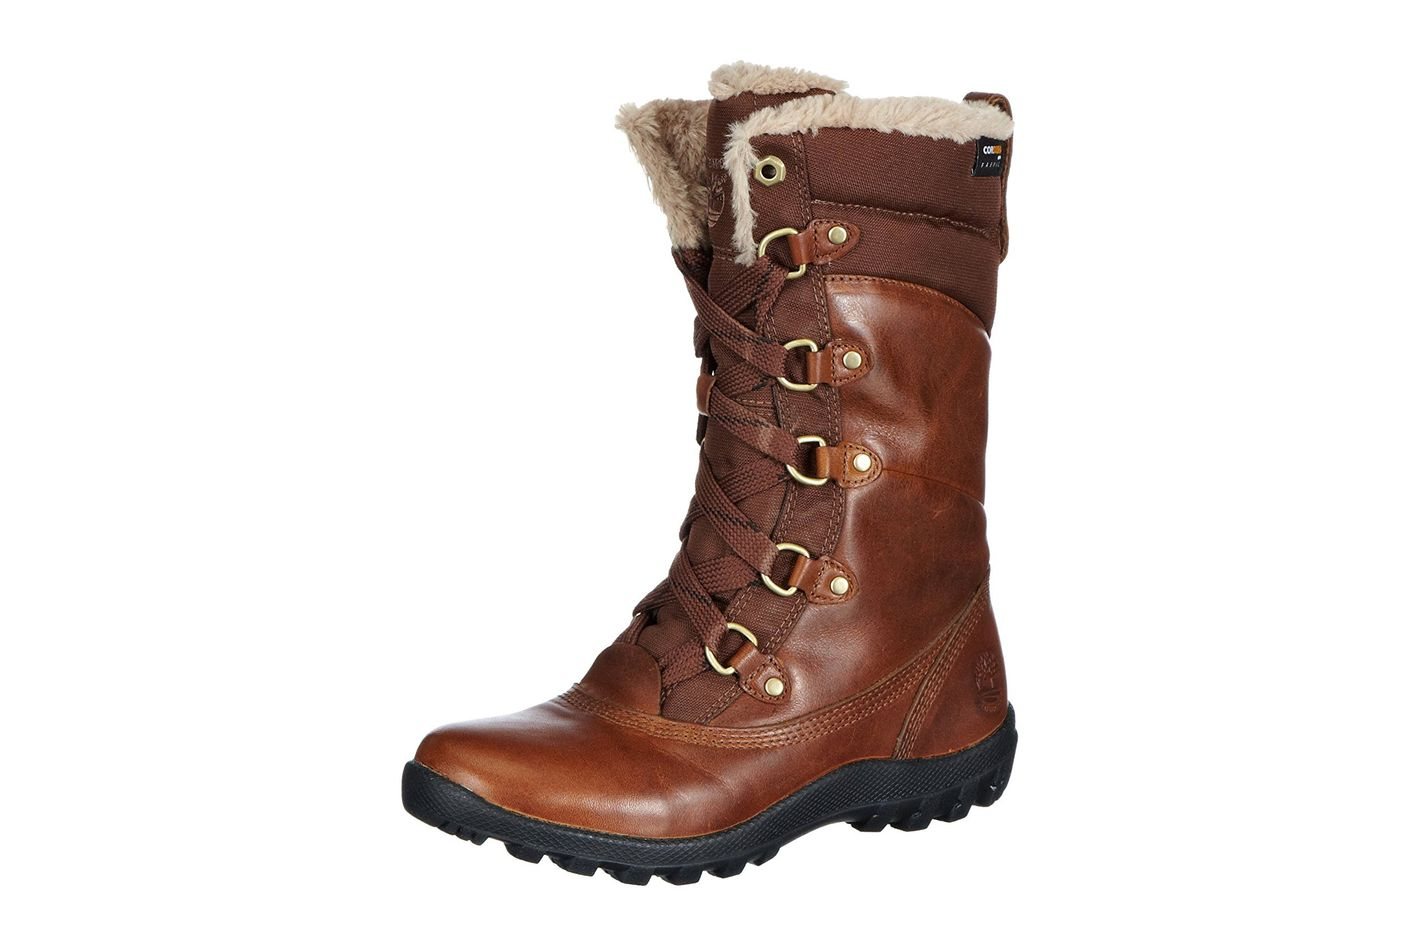 Best Winter Boots For Women 2018